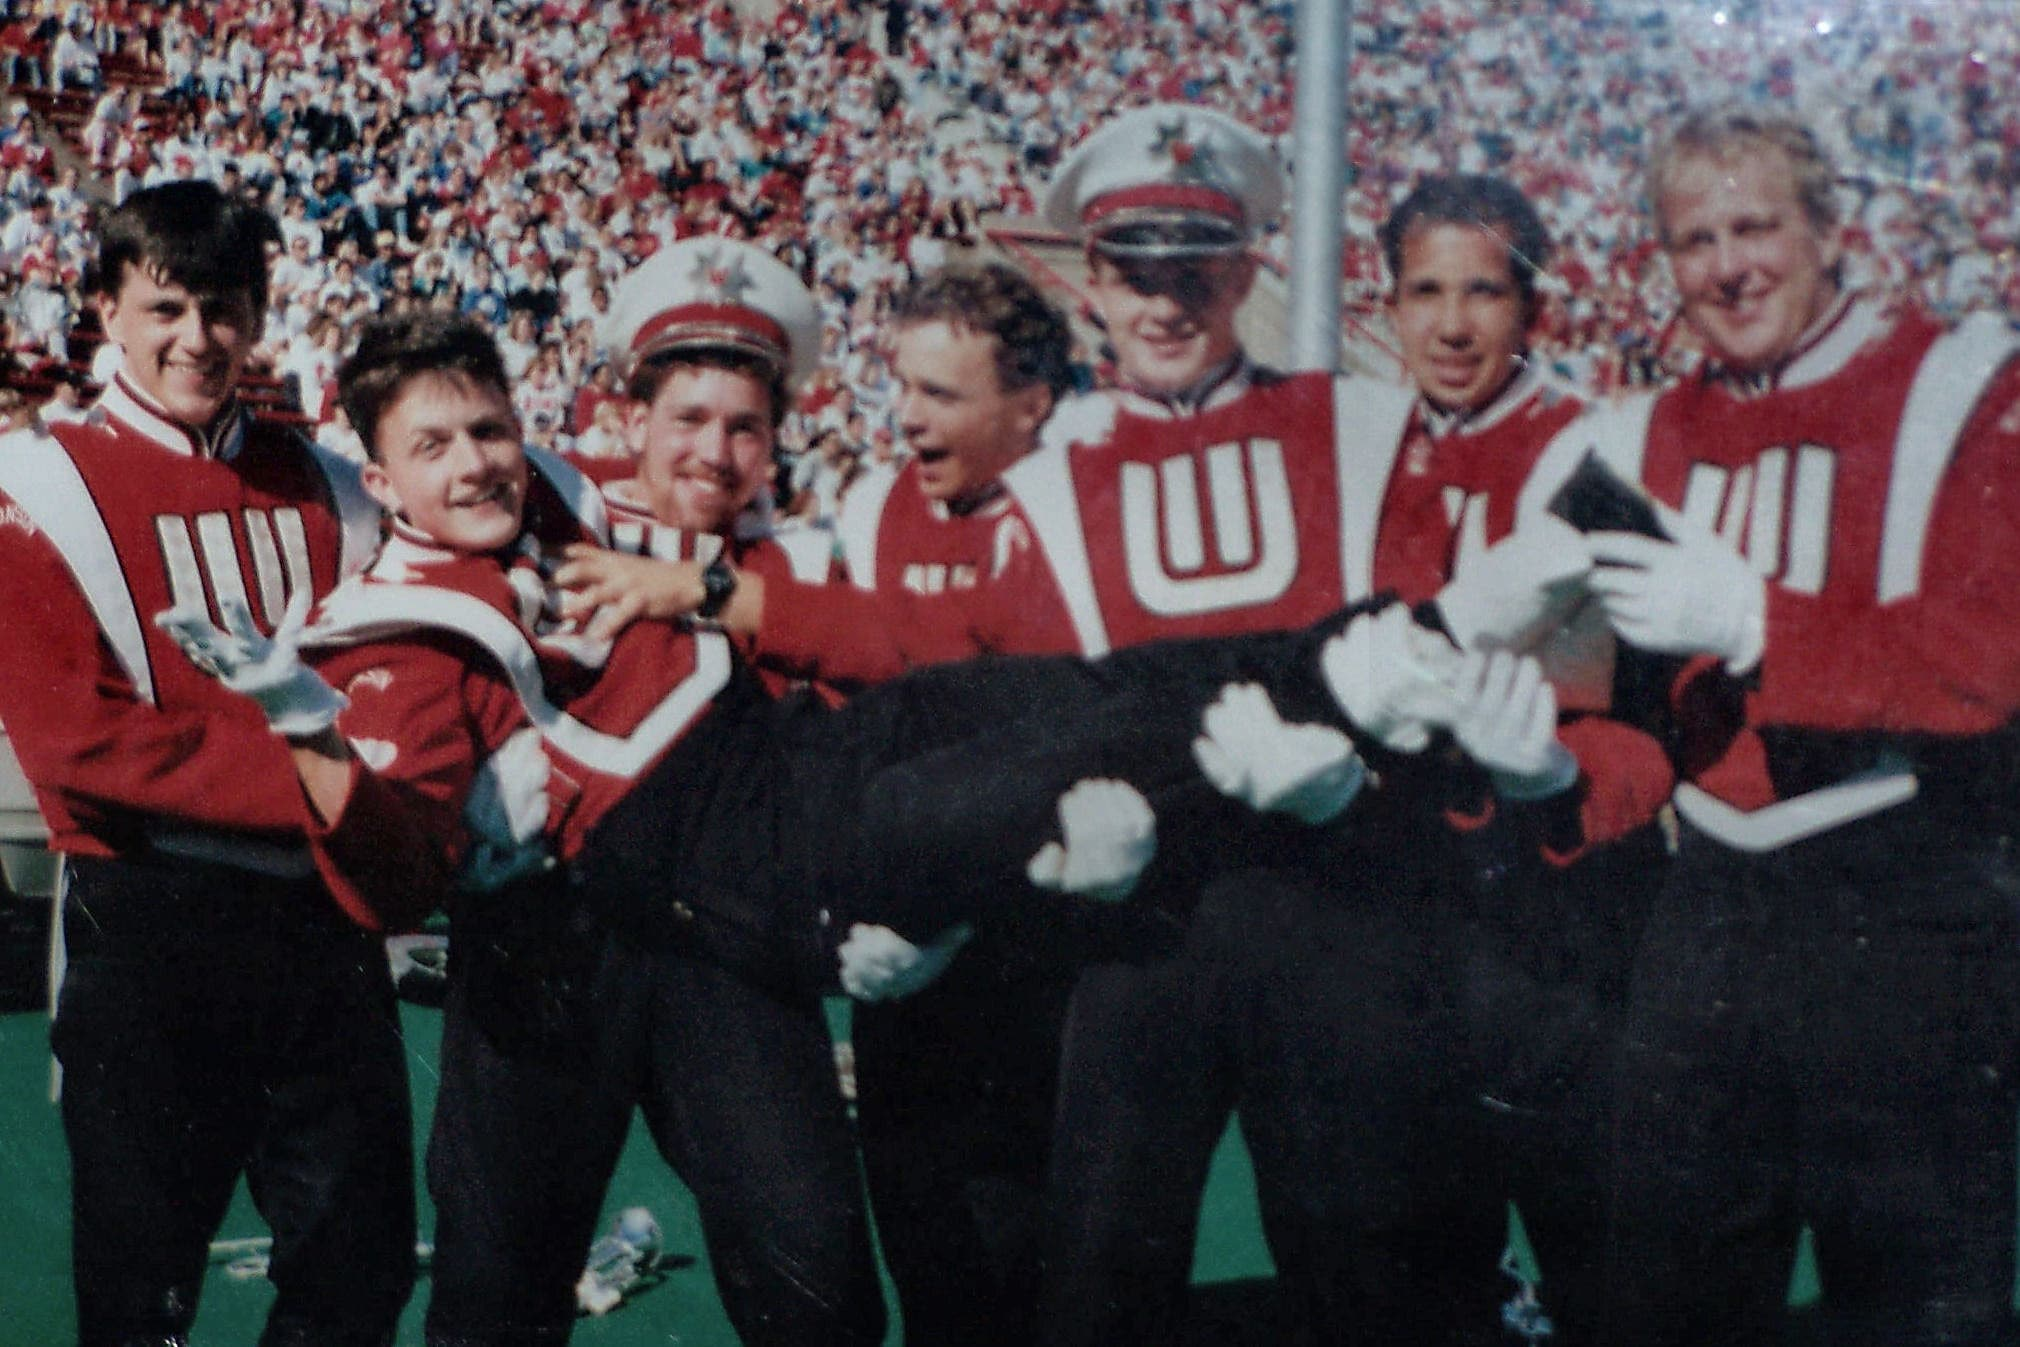 University of Wisconsin Marching Band friends